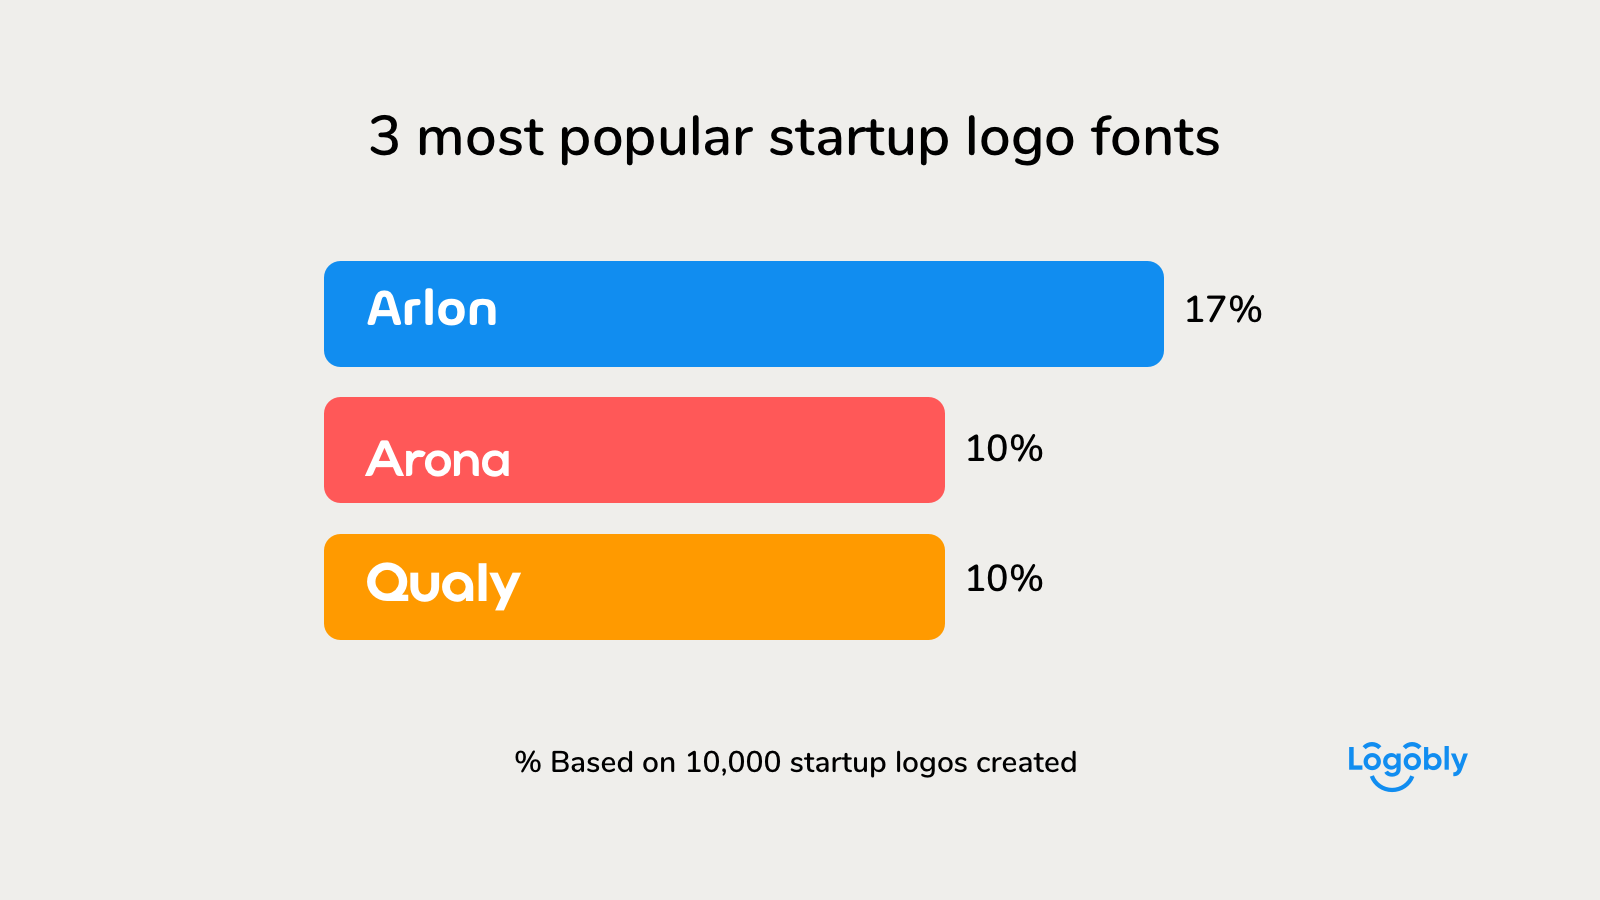 3 most popular startup logo fonts